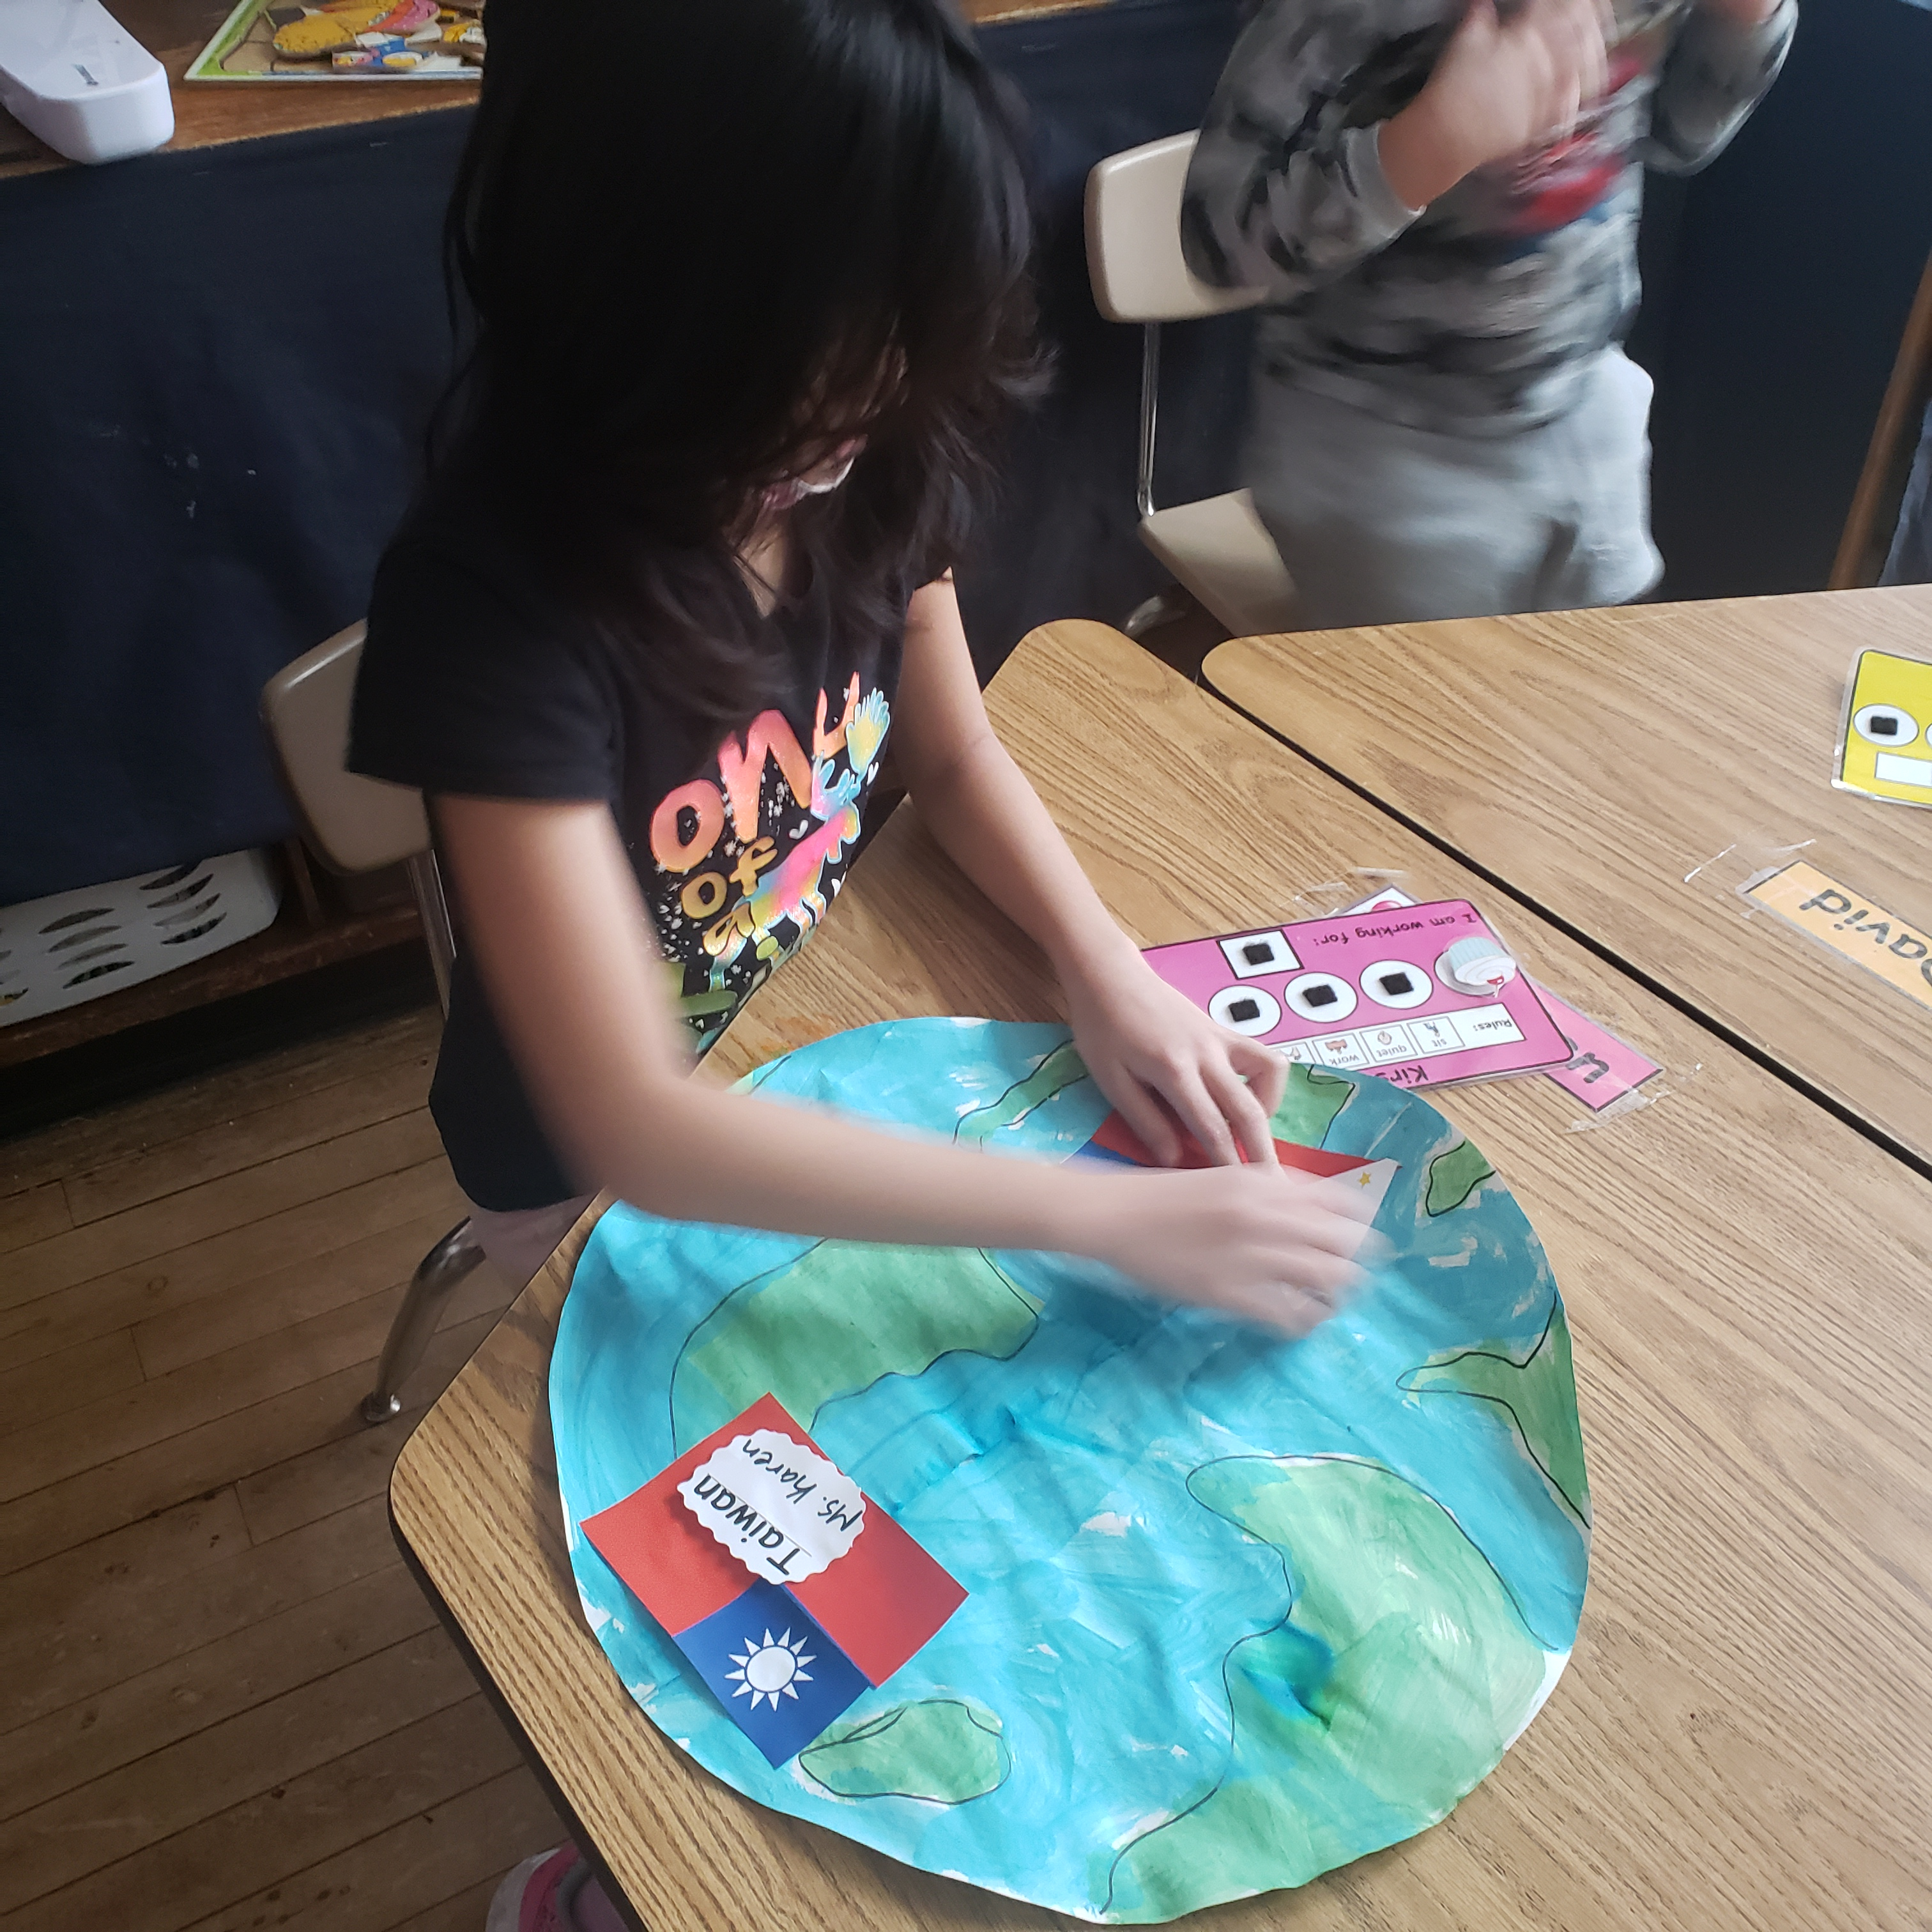 Child working on respect for all activity